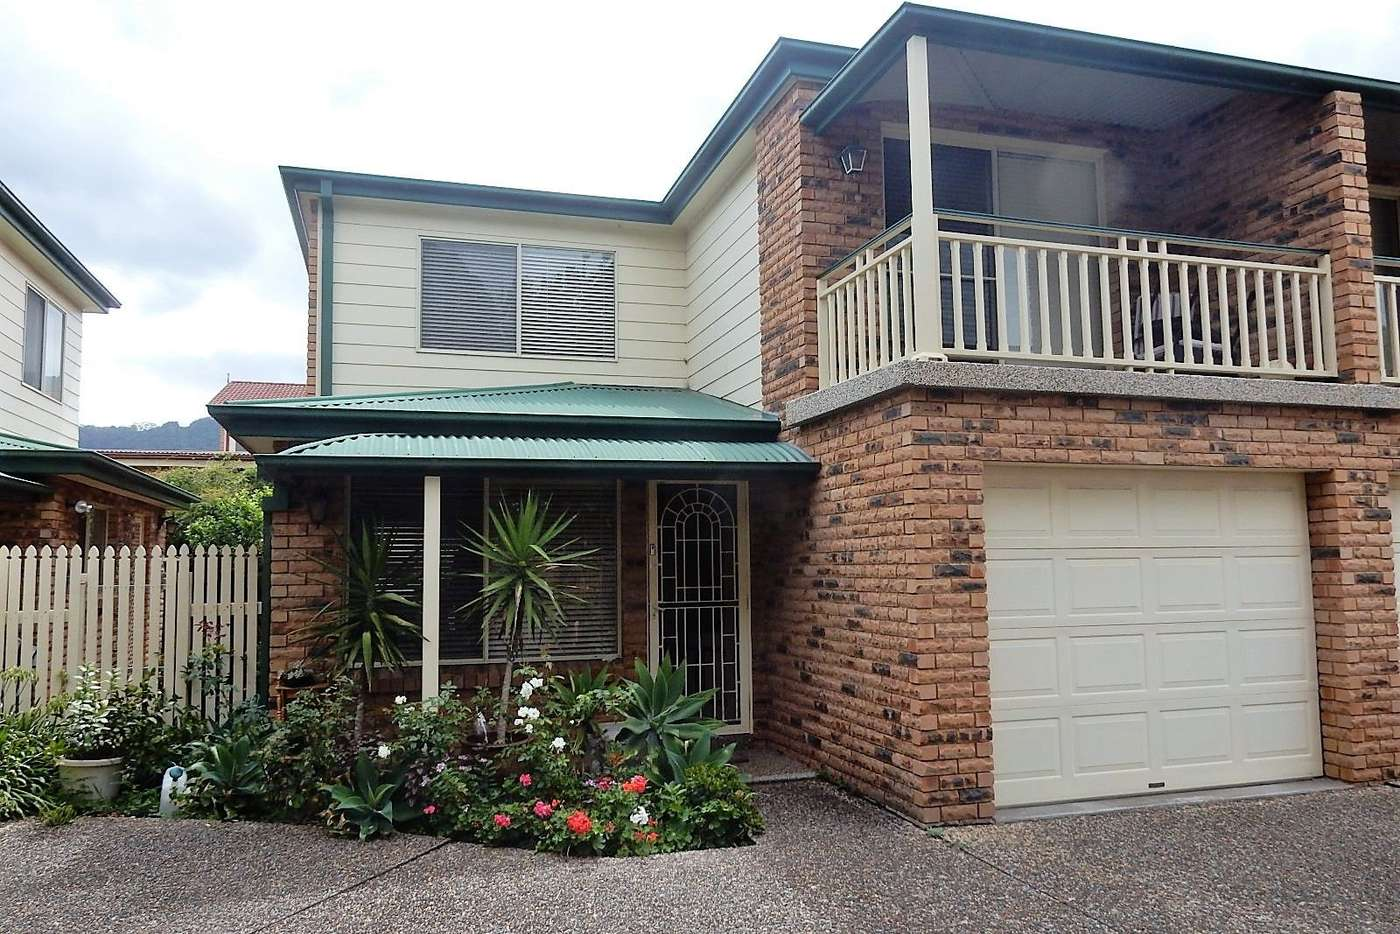 Main view of Homely townhouse listing, 3/51-53 Russell Street, Woonona NSW 2517